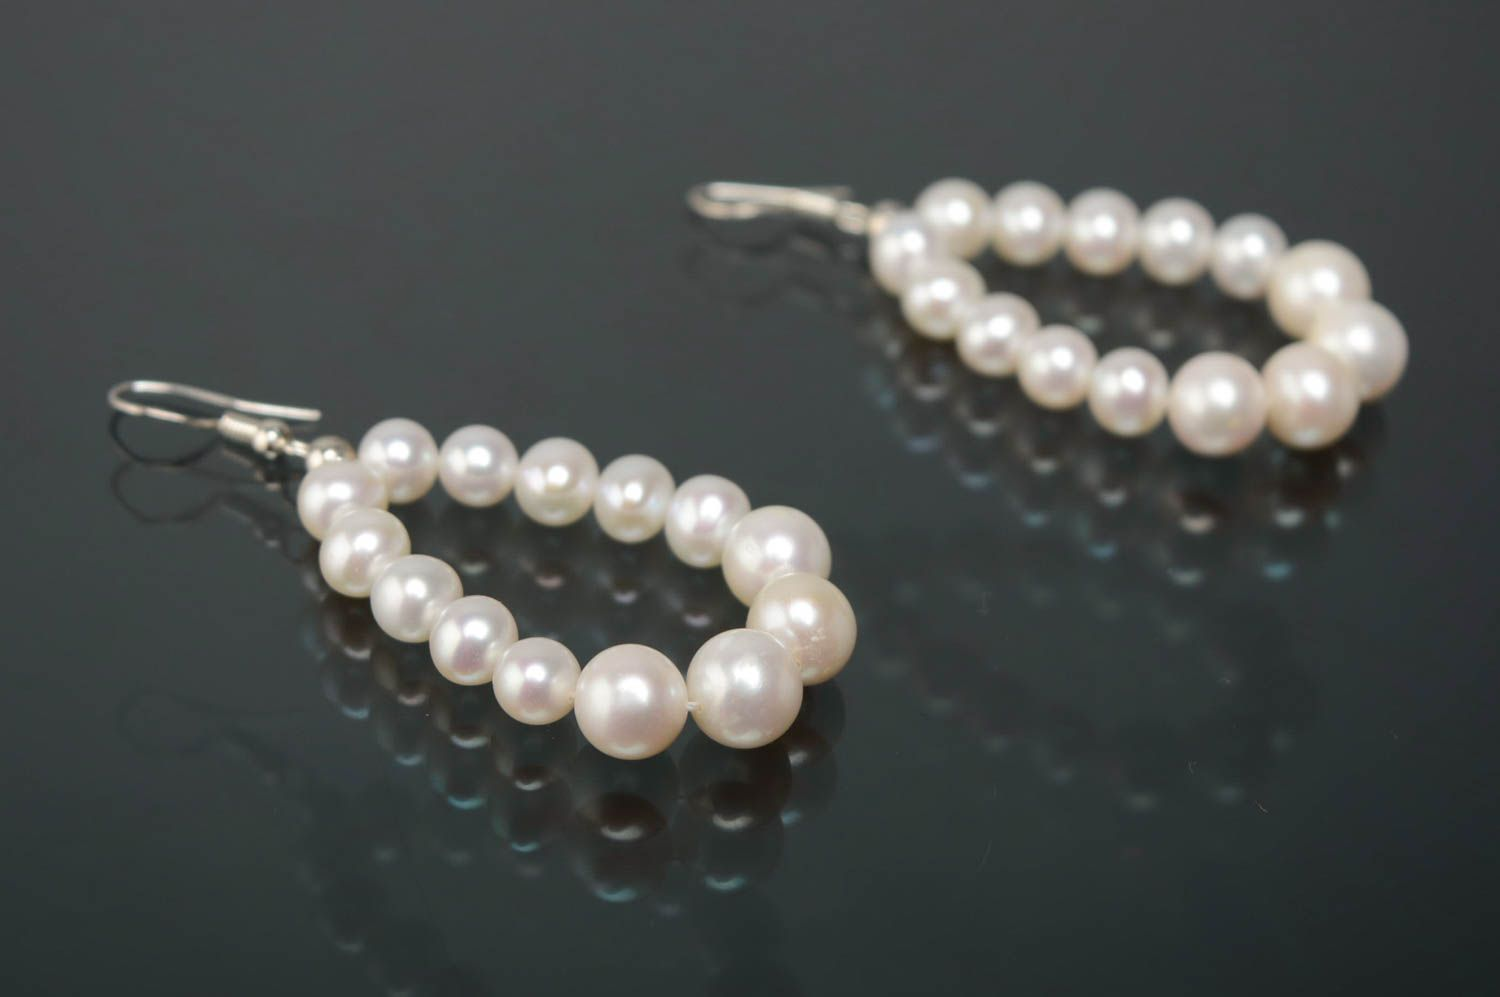 dangle earrings Silver earrings with pearls of white color - MADEheart.com